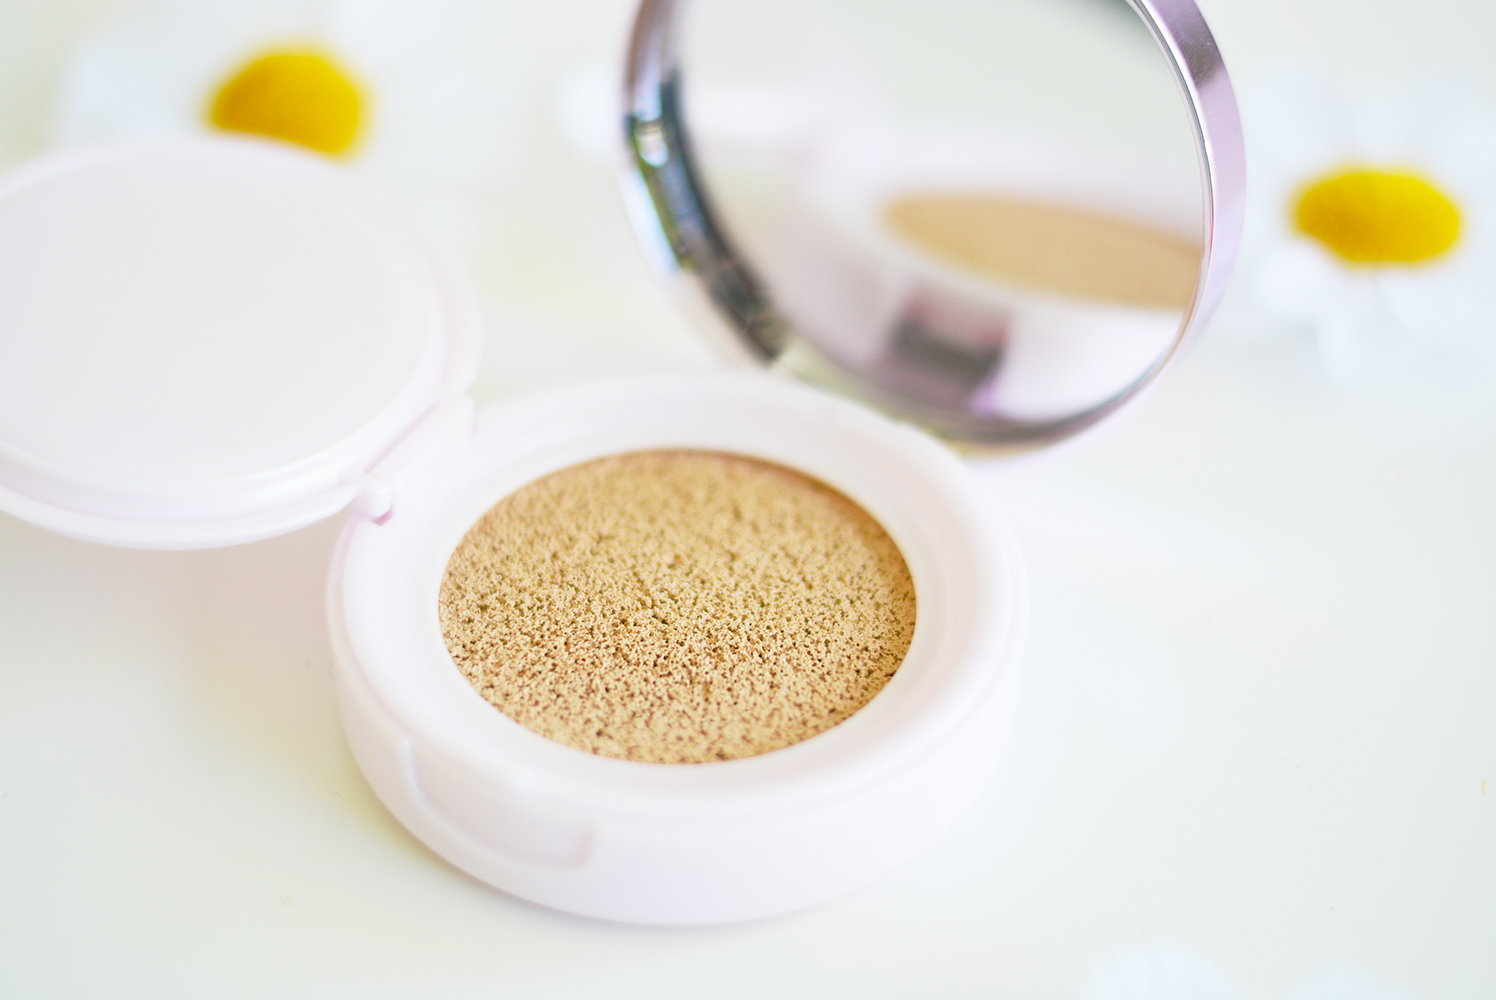 L'Oréal Paris Nude Magique Cushion Foundation